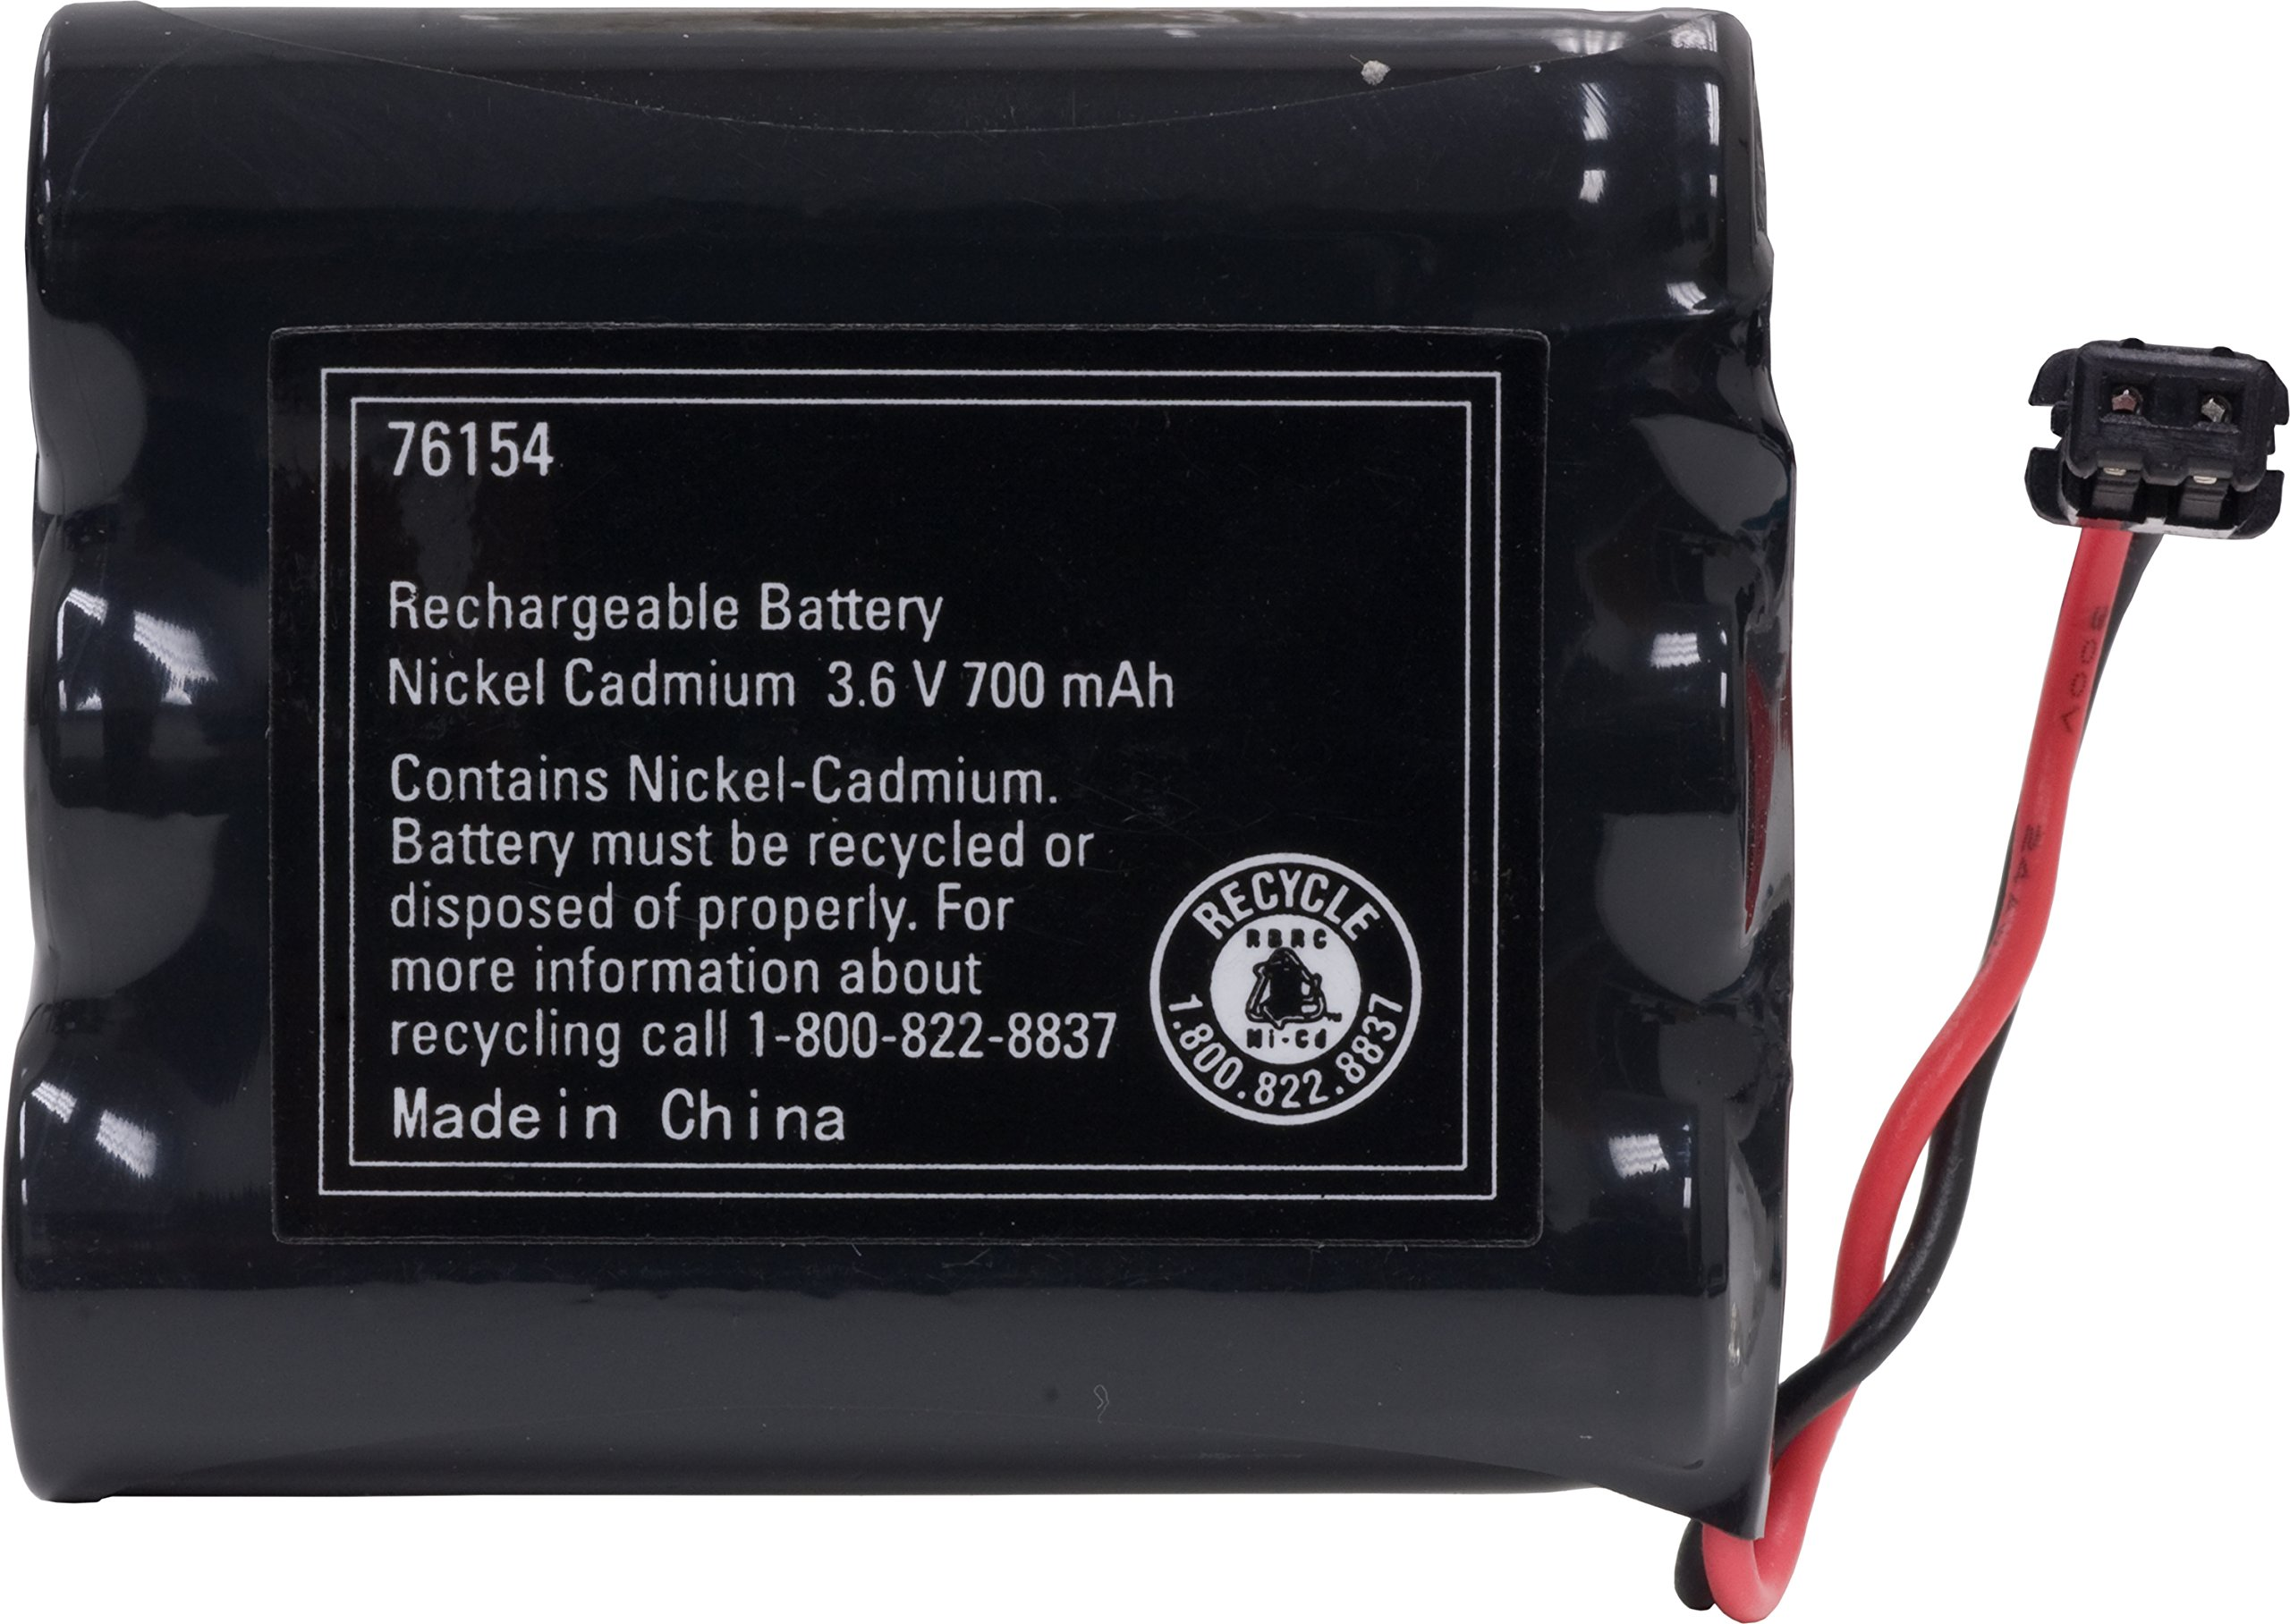 Power Gear Cordless Phone Rechargeable NiCad Battery, 3.6V 700mAh Battery Pack, Cordless Phone Handset Compatible, 76154